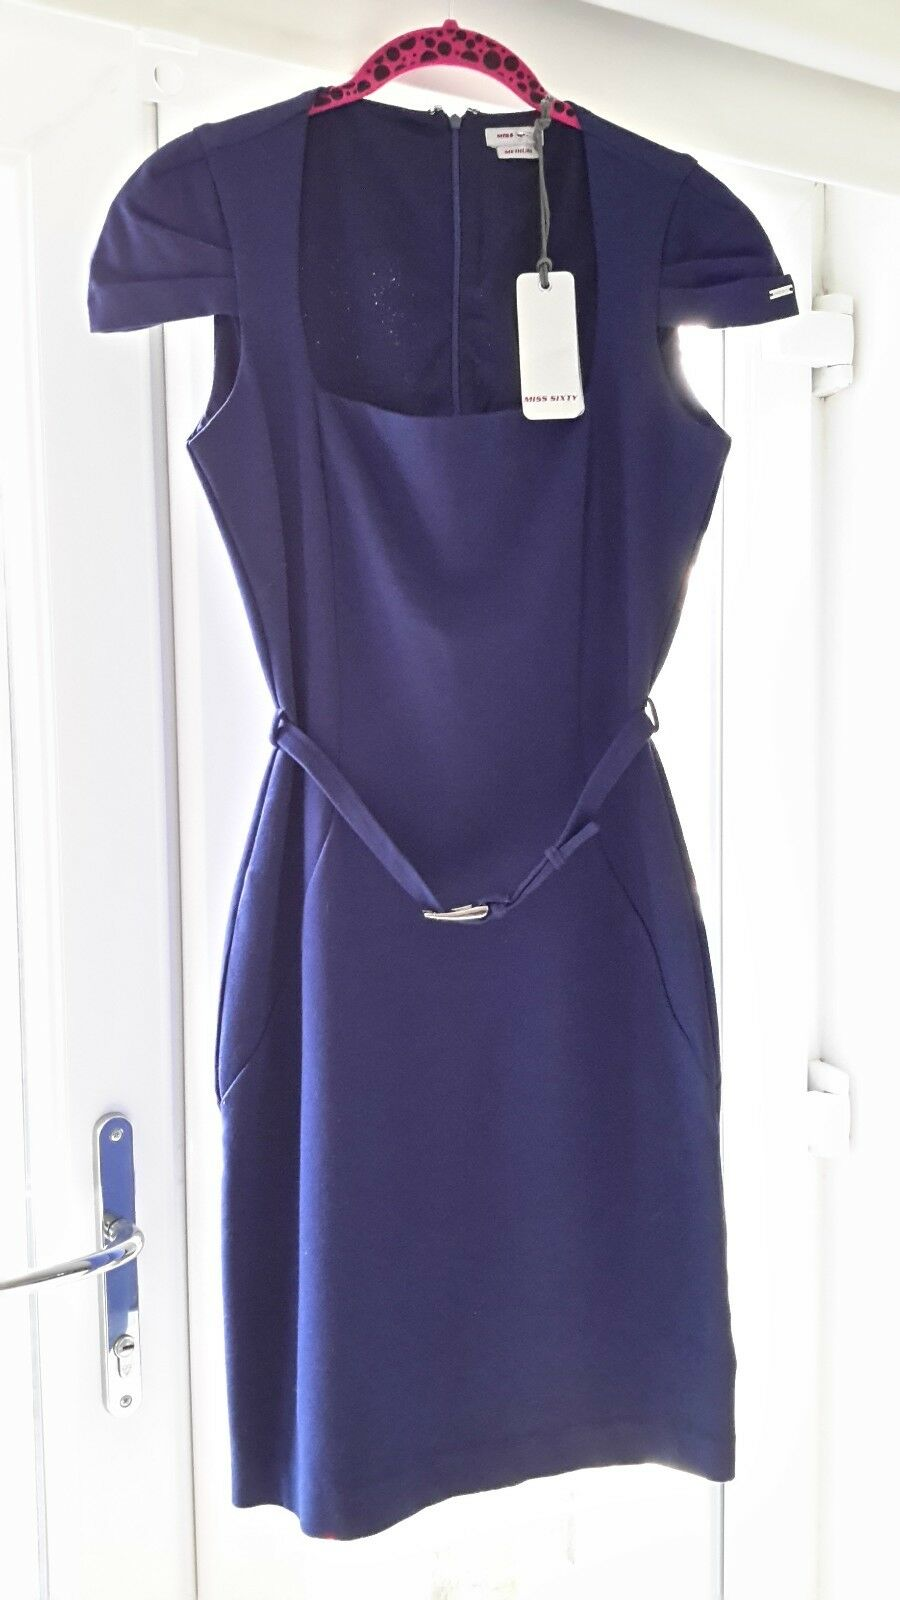 Miss Sixty dress, smart, wiggle, office, size medium, navy bluee, new with tag.